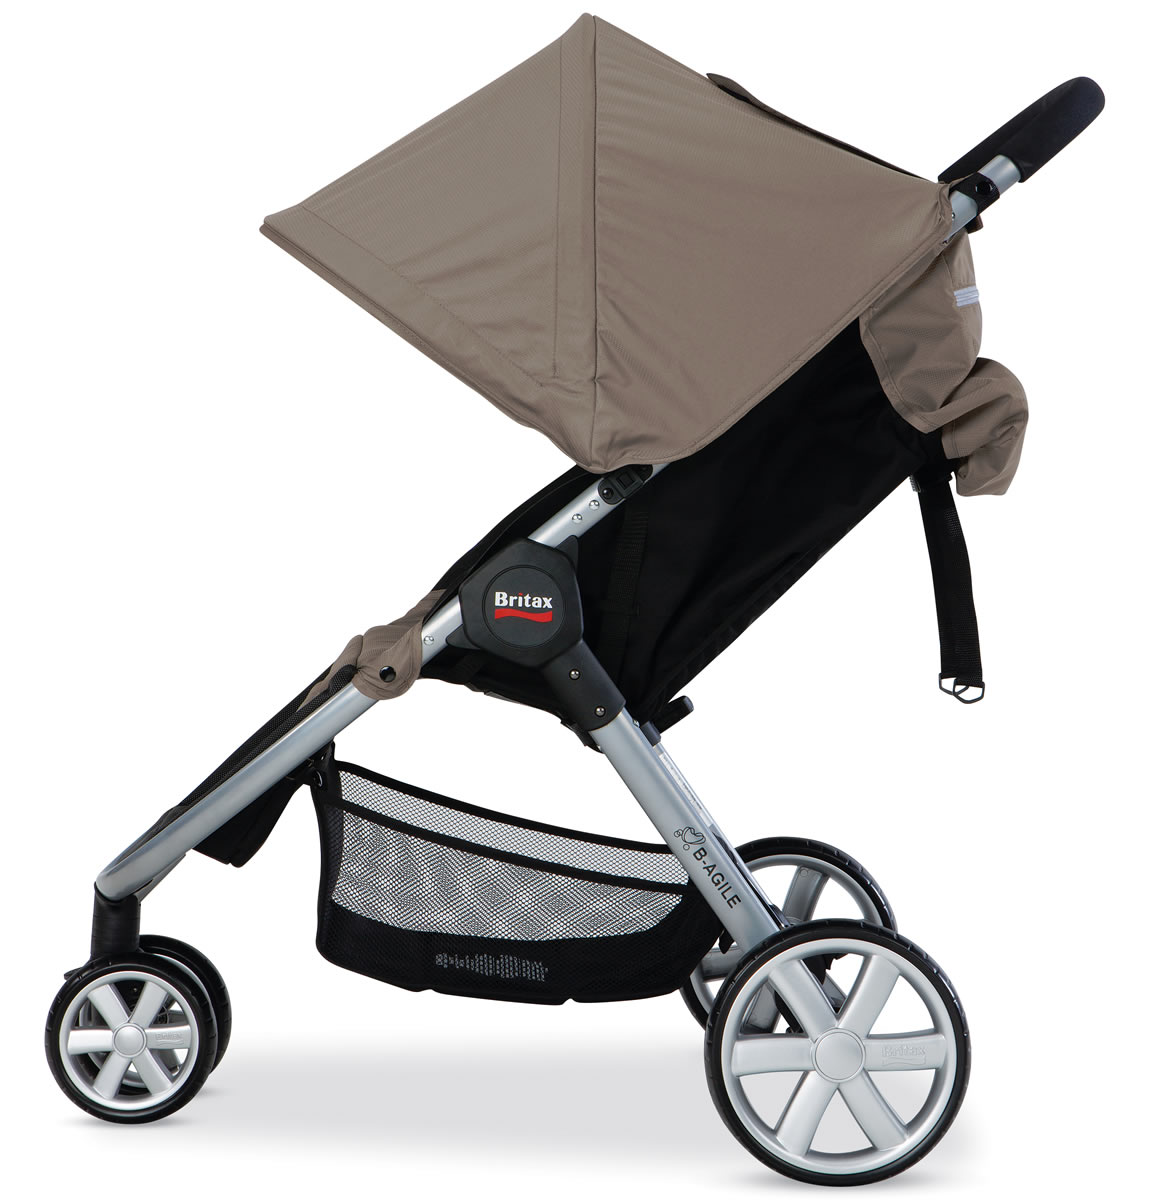 the b agile stroller from britax is a lightweight compact